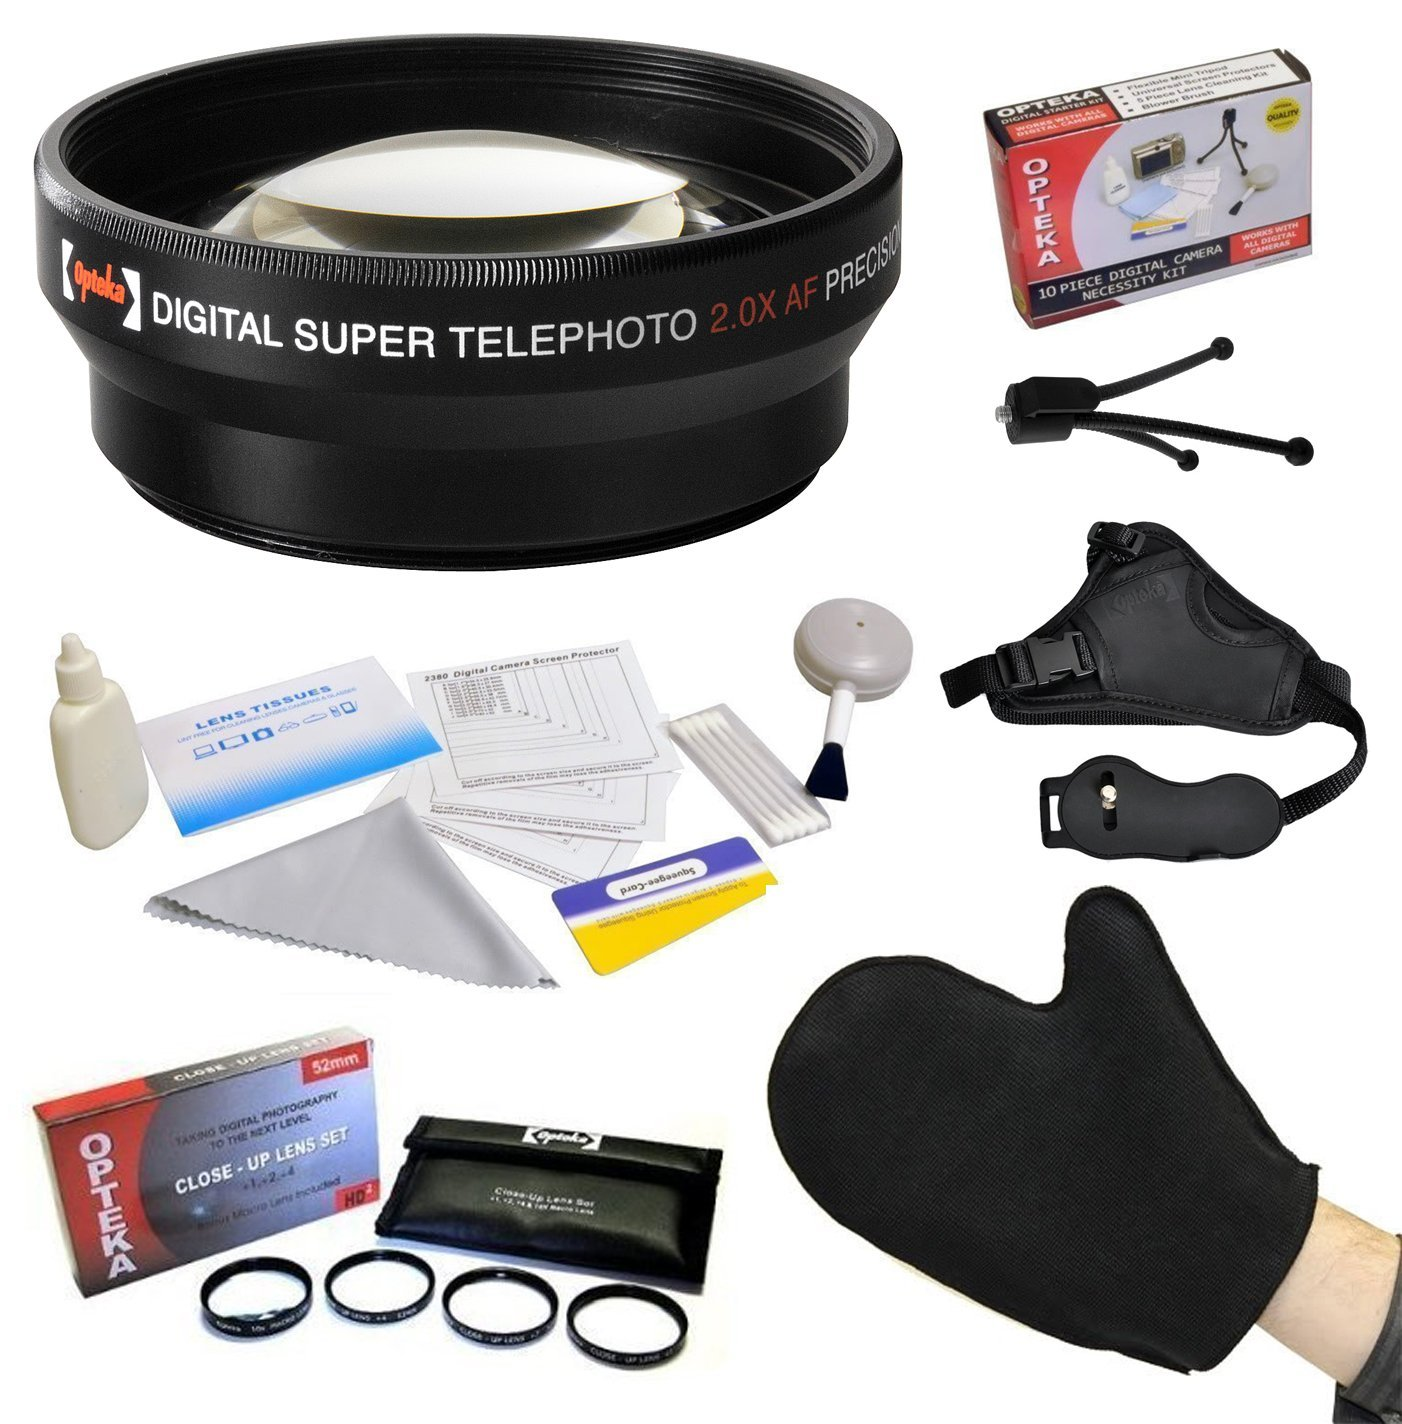 Best Value Kit for Canon PowerShot G7 G9 Digital Camera with 2x Lens   Opteka Close-Up Set with Macro Lens   Grip Strap   Microfiber LCD Photo Cleaning Glove   Tube Adapter   Cleaning Kit